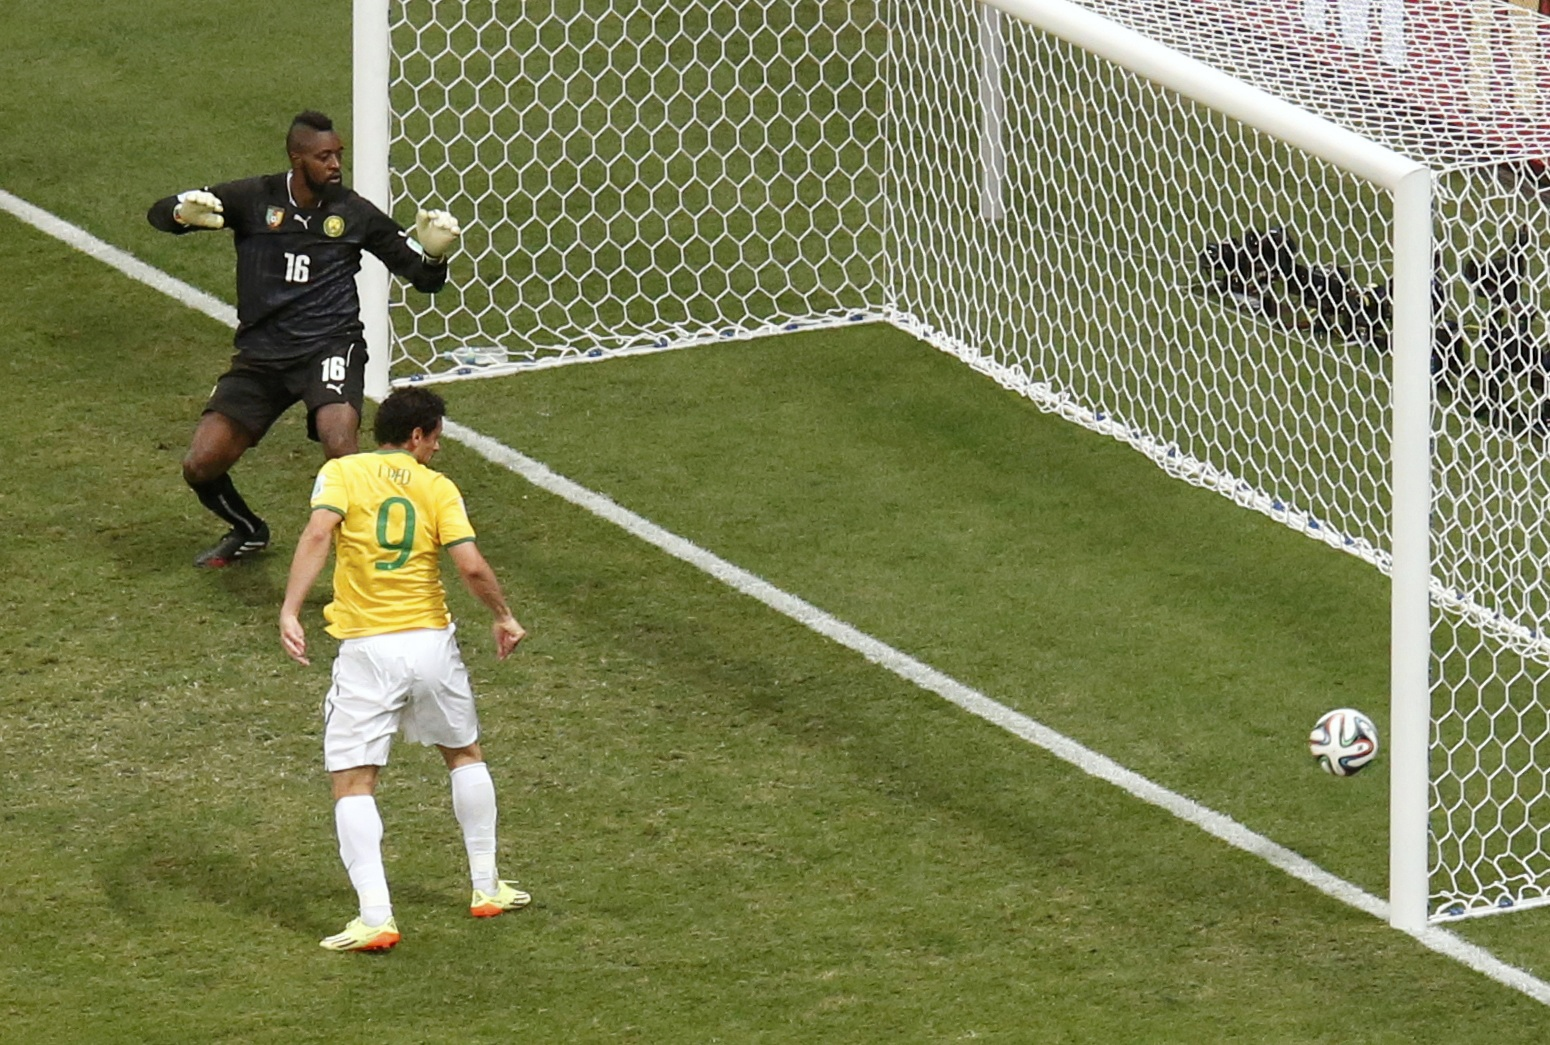 Brazil's Fred scores past Cameroon's goalkeeper Charles Itandje during their 2014 World Cup Group A soccer match at the Brasilia national stadium in Brasilia June 23, 2014.    REUTERS/David Gray (BRAZIL  - Tags: SOCCER SPORT WORLD CUP)